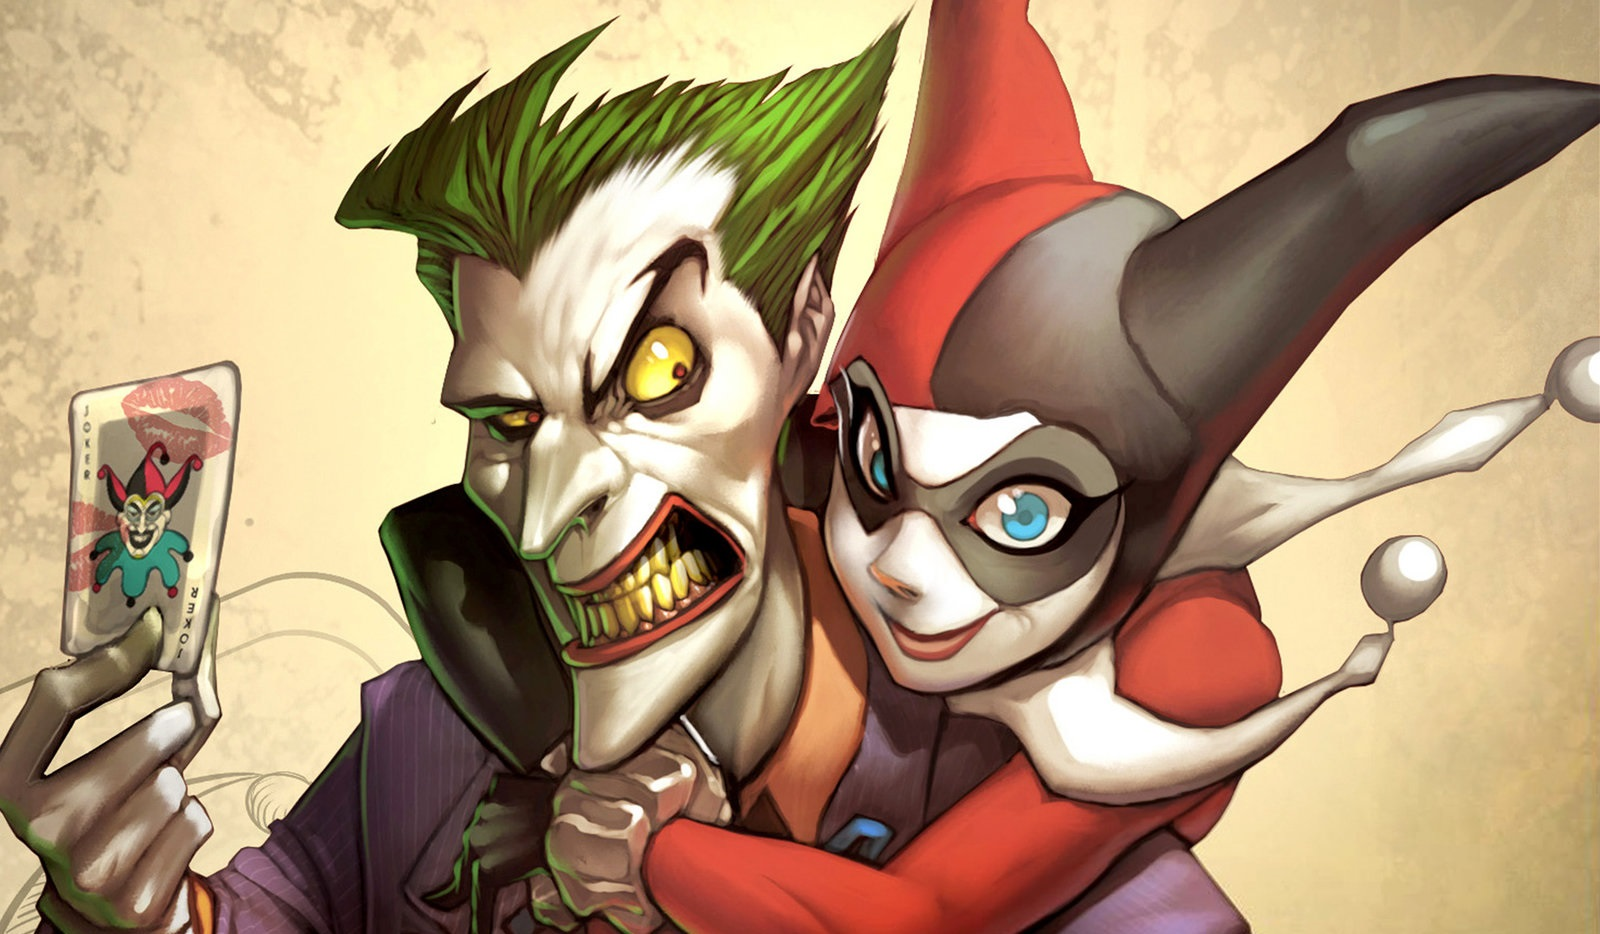 Suicide Squad Wallpaper   HD Wallpapers Backgrounds of Your Choice 1600x934